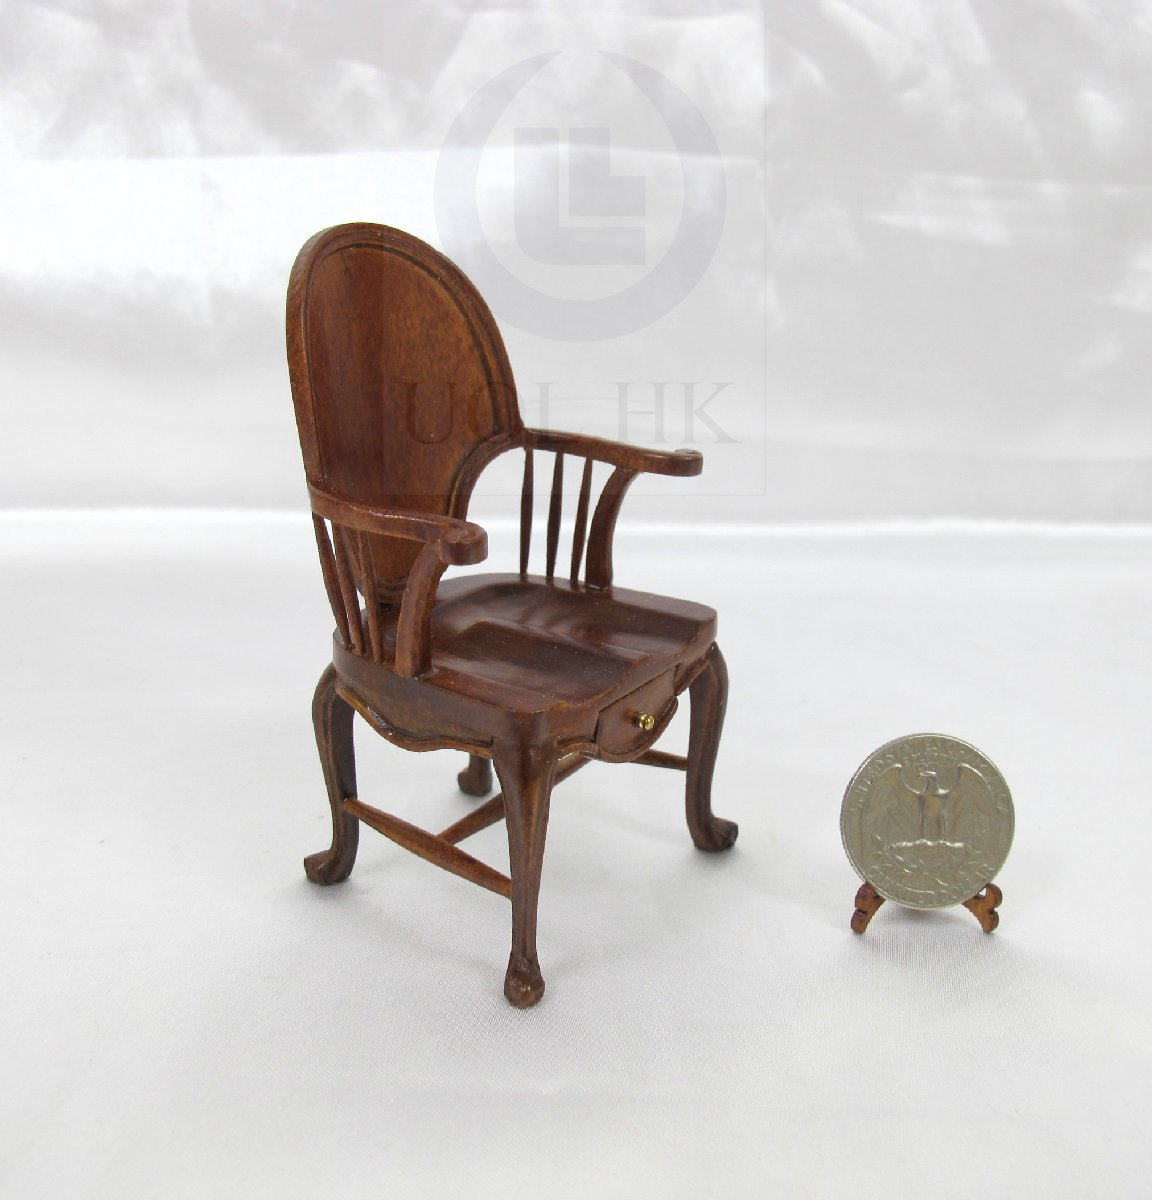 Doll House 1:12 Scale Miniature Windsor Chair With Drawer [wn]